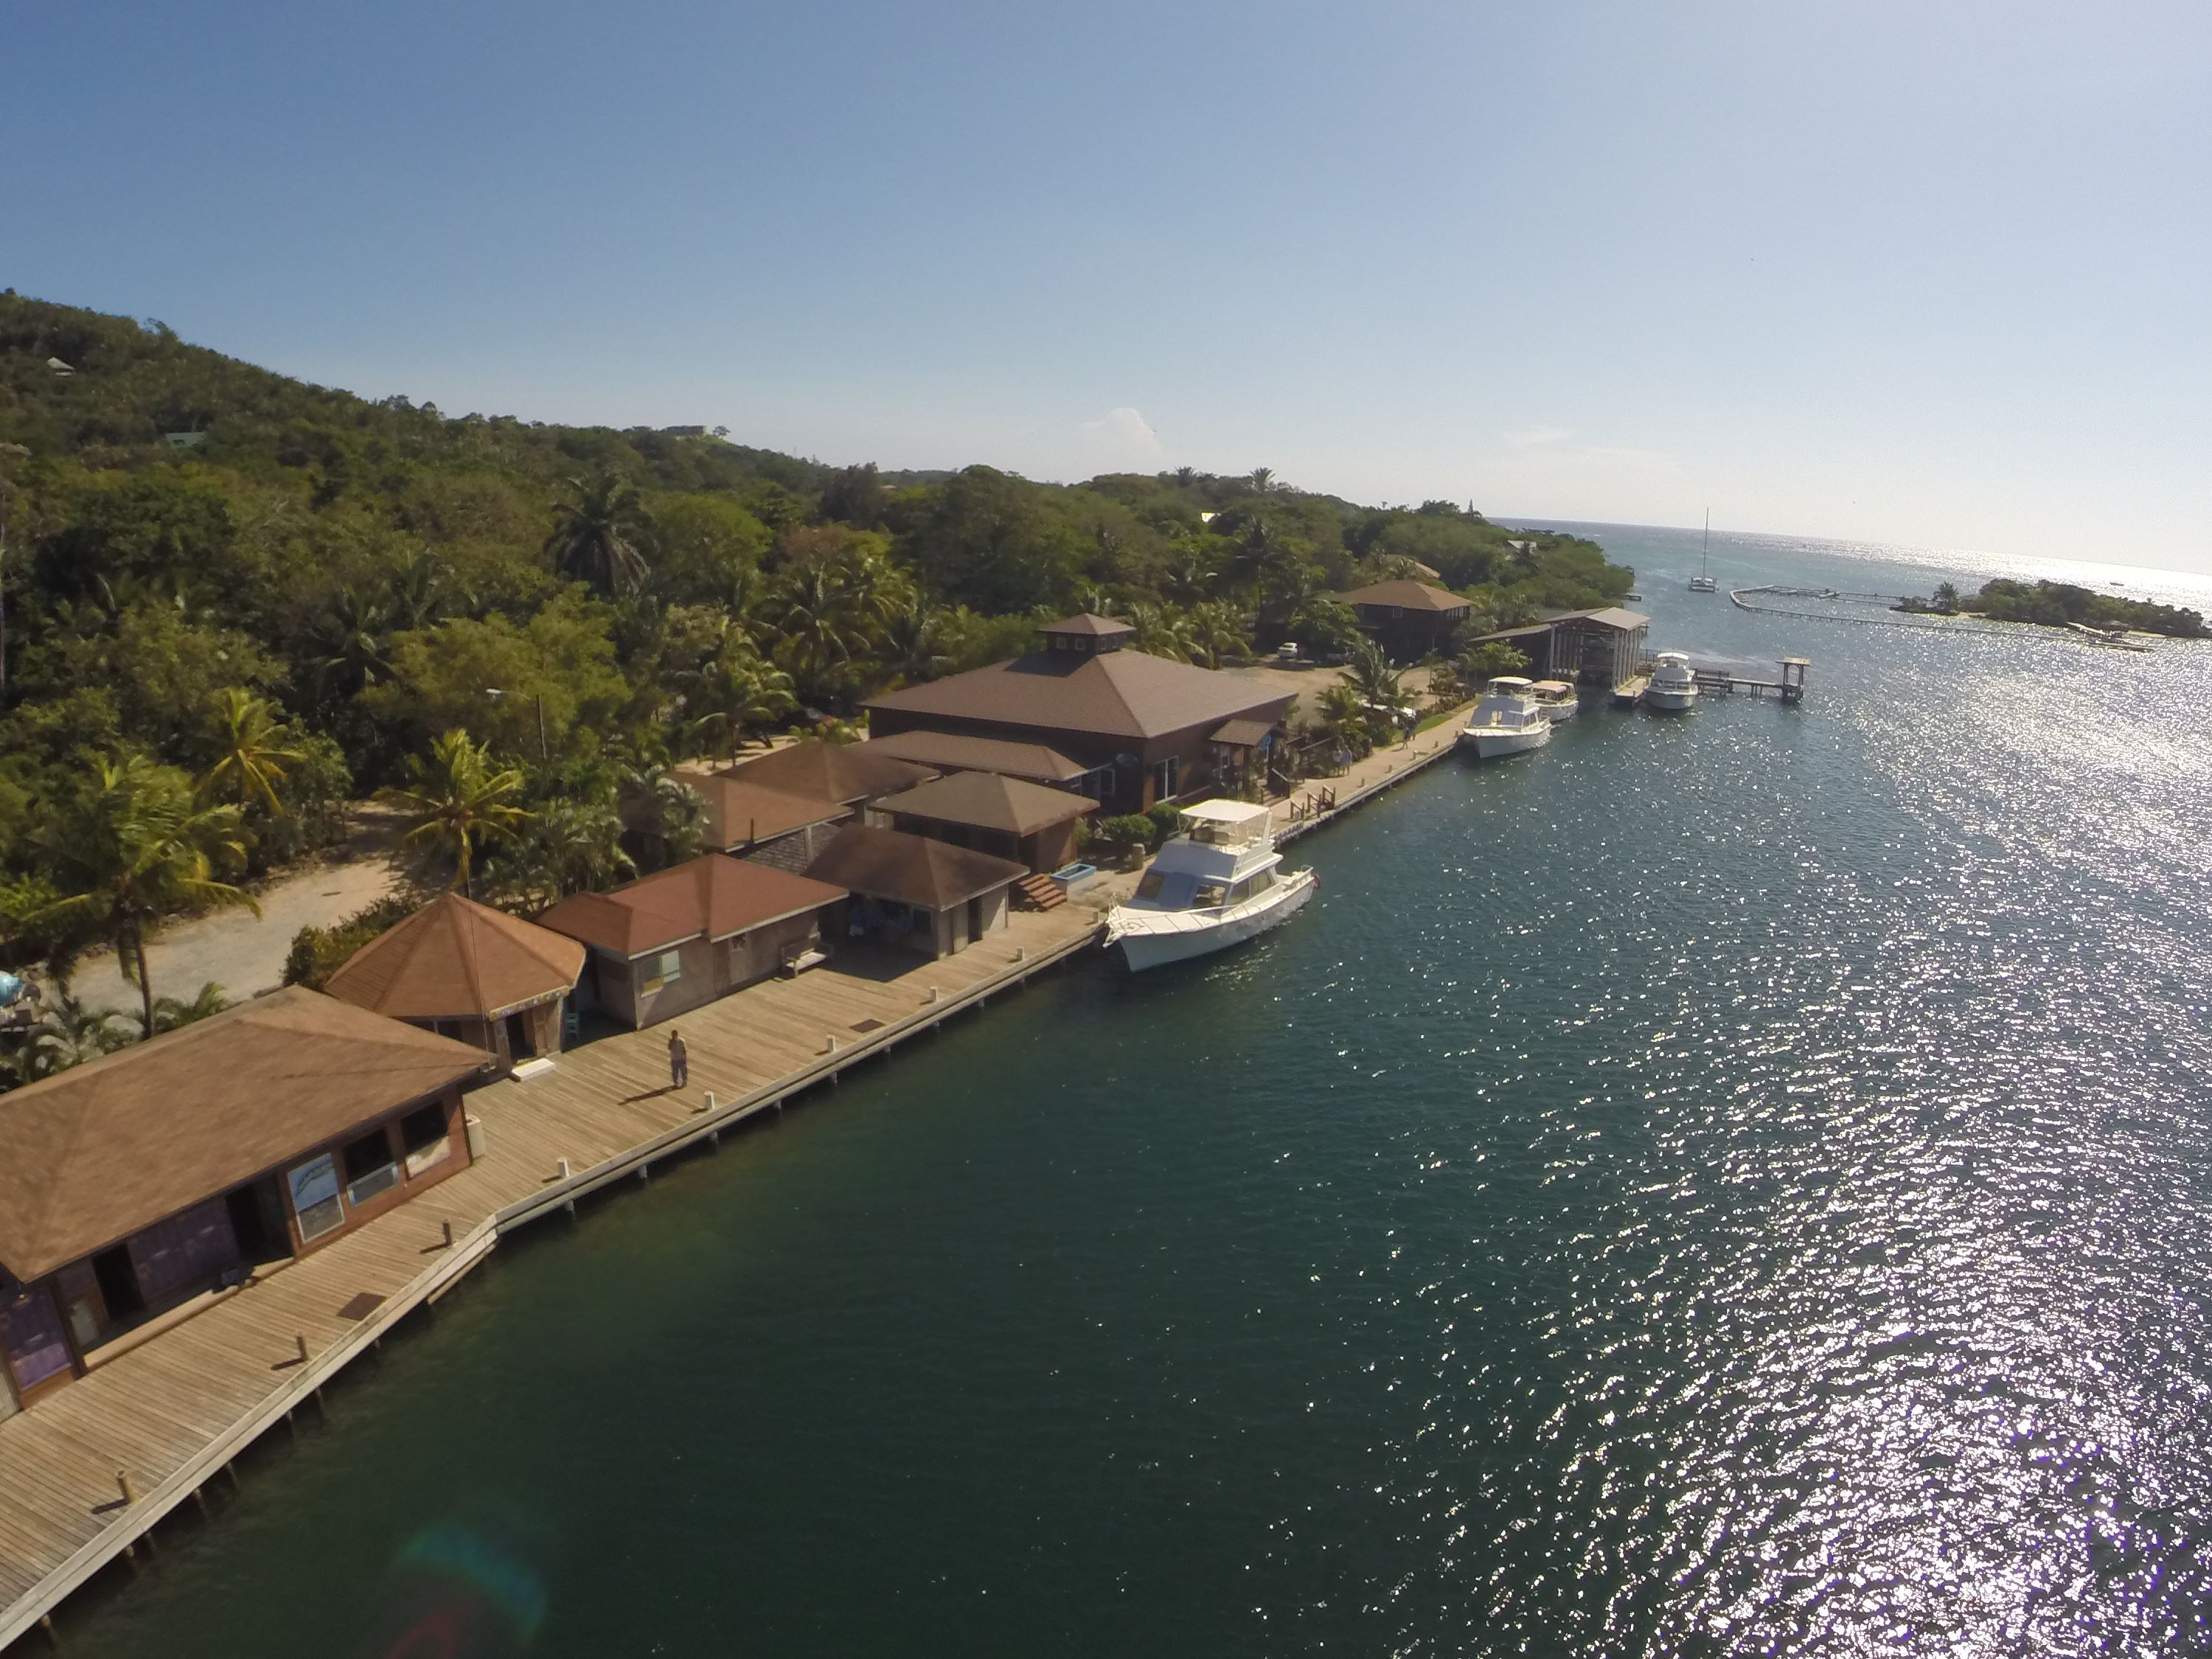 Roatan private day tour